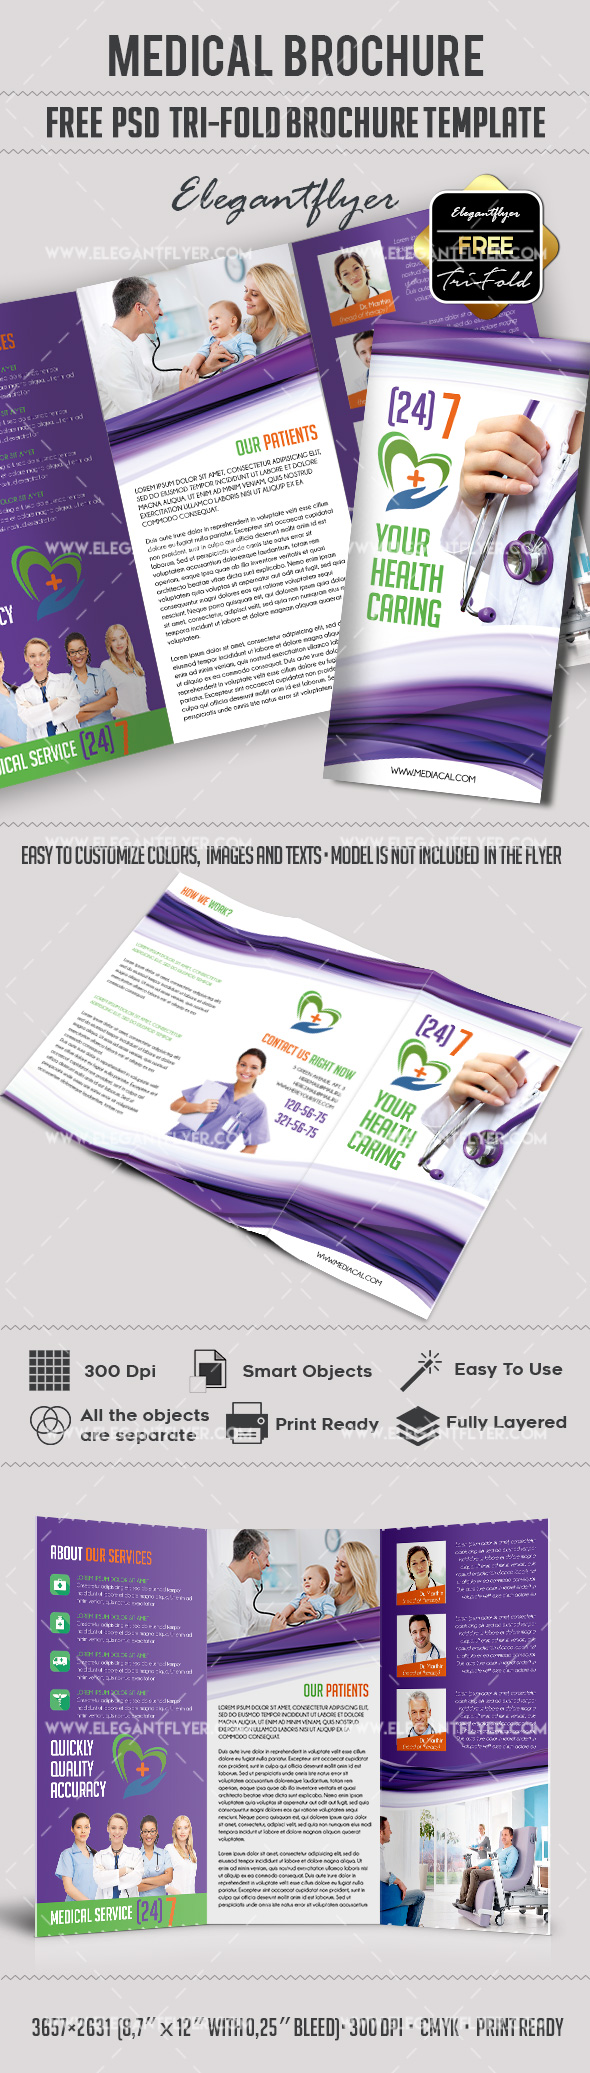 Medical free tri fold psd brochure template by for Psd template brochure